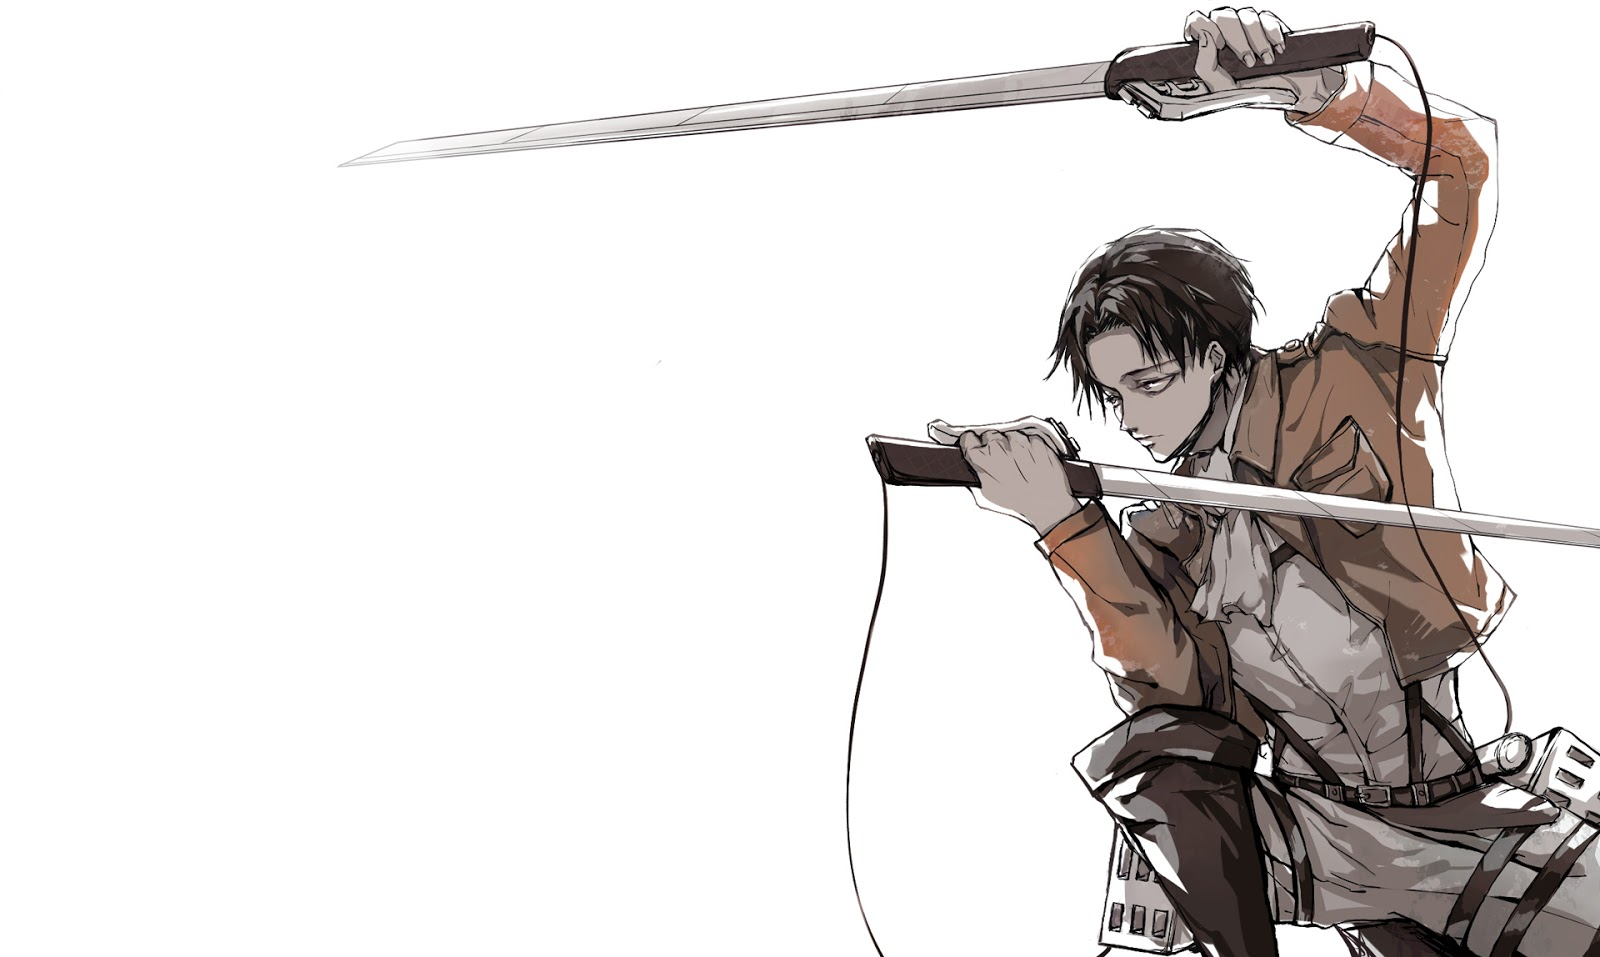 Kyojin Levi Rivaille Anime Blade Sword HD Wallpaper Desktop Background 1600x957